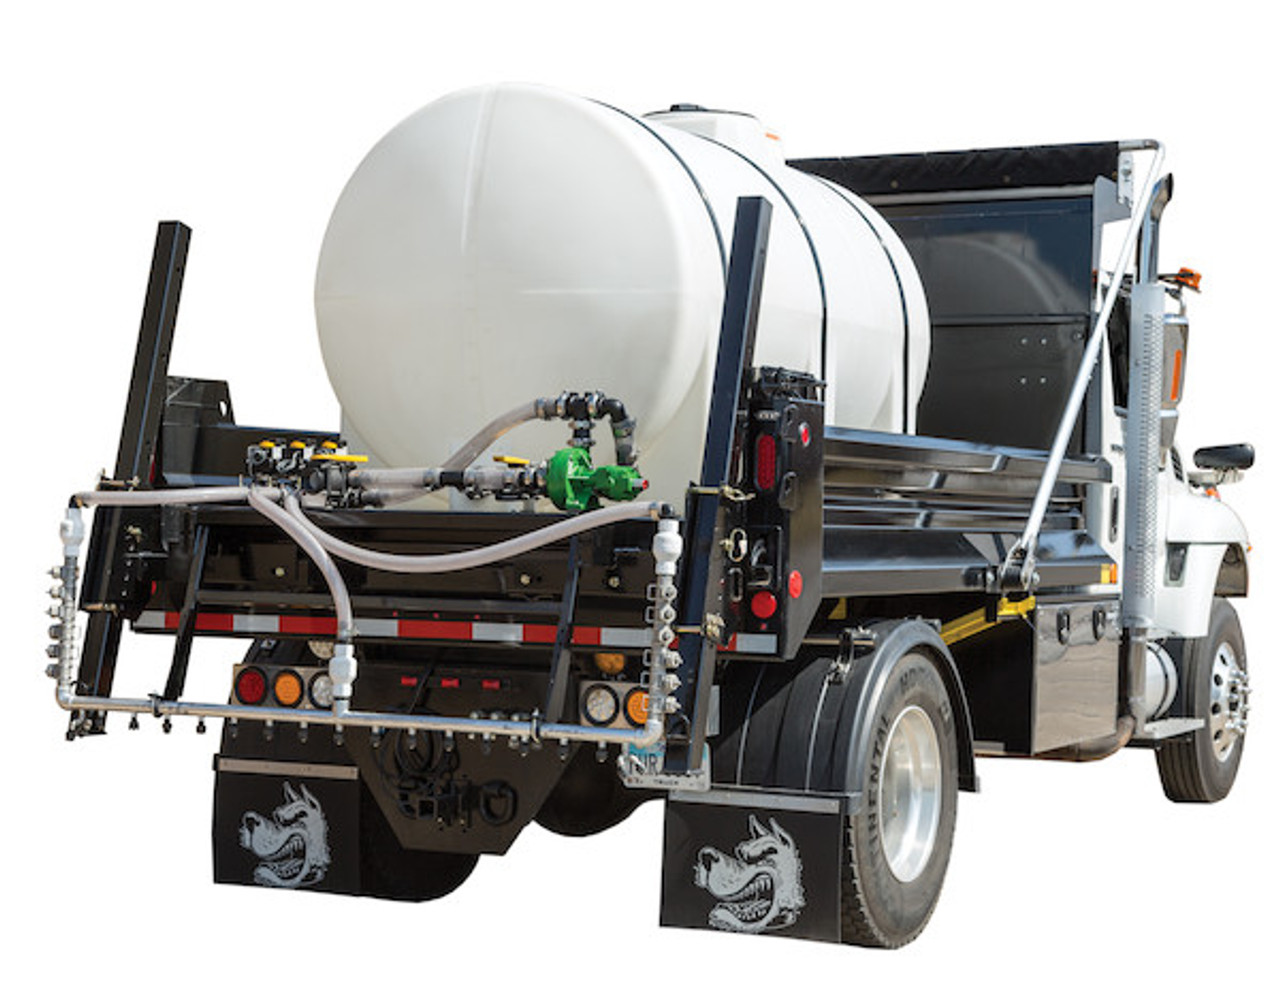 6192735 BUYERS SALT DOGG  Hydraulic-Powered 1750 GALLON Anti-Ice System